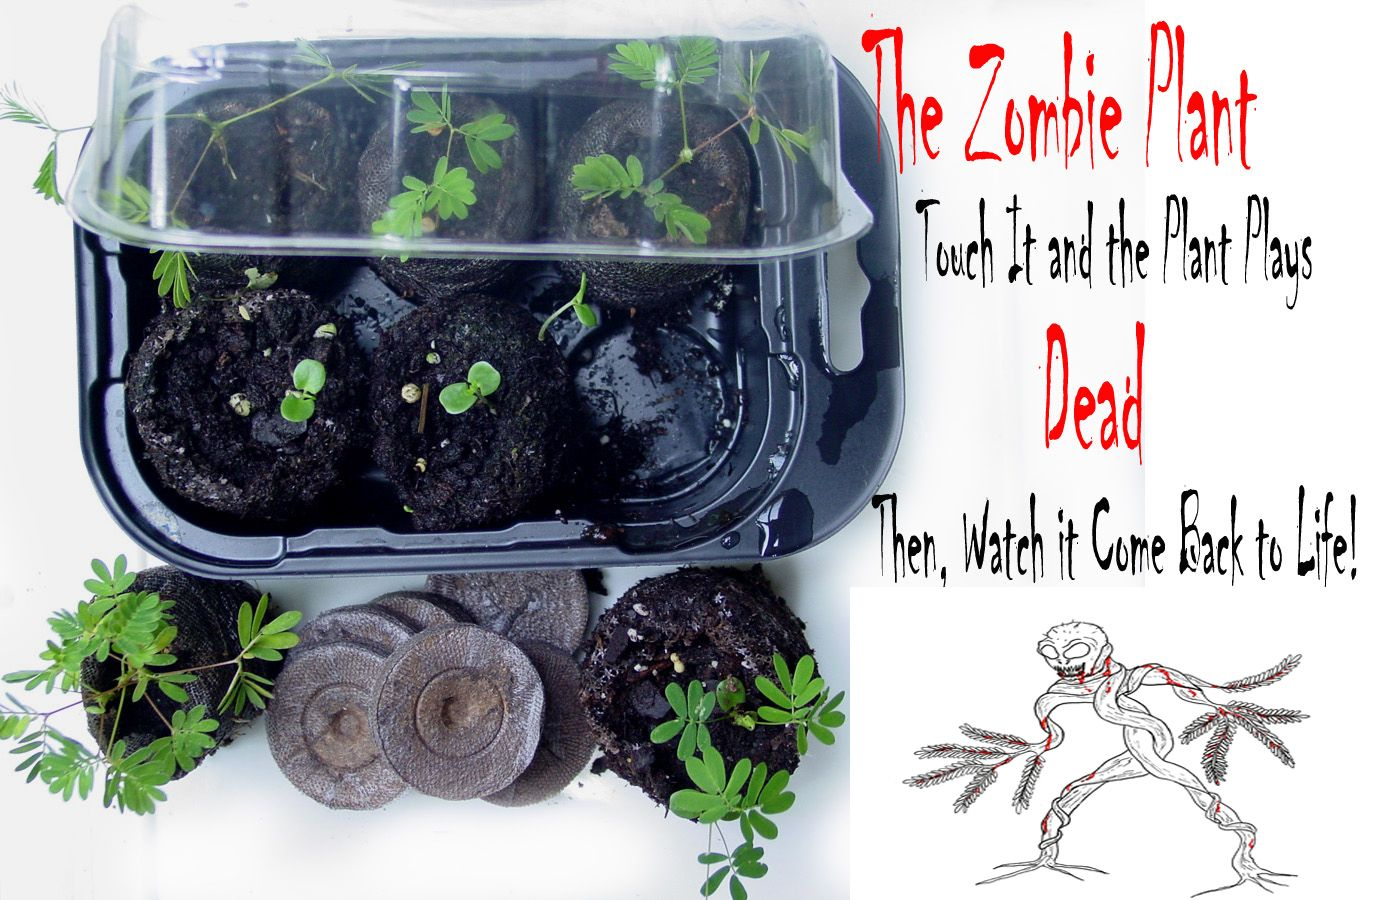 """Grow The Zombie Plant - Touch the plant and it """"PLAYS DEAD""""! Then watch how it """"COMES BACK TO LIFE""""! http://www.thezombieplant.com"""